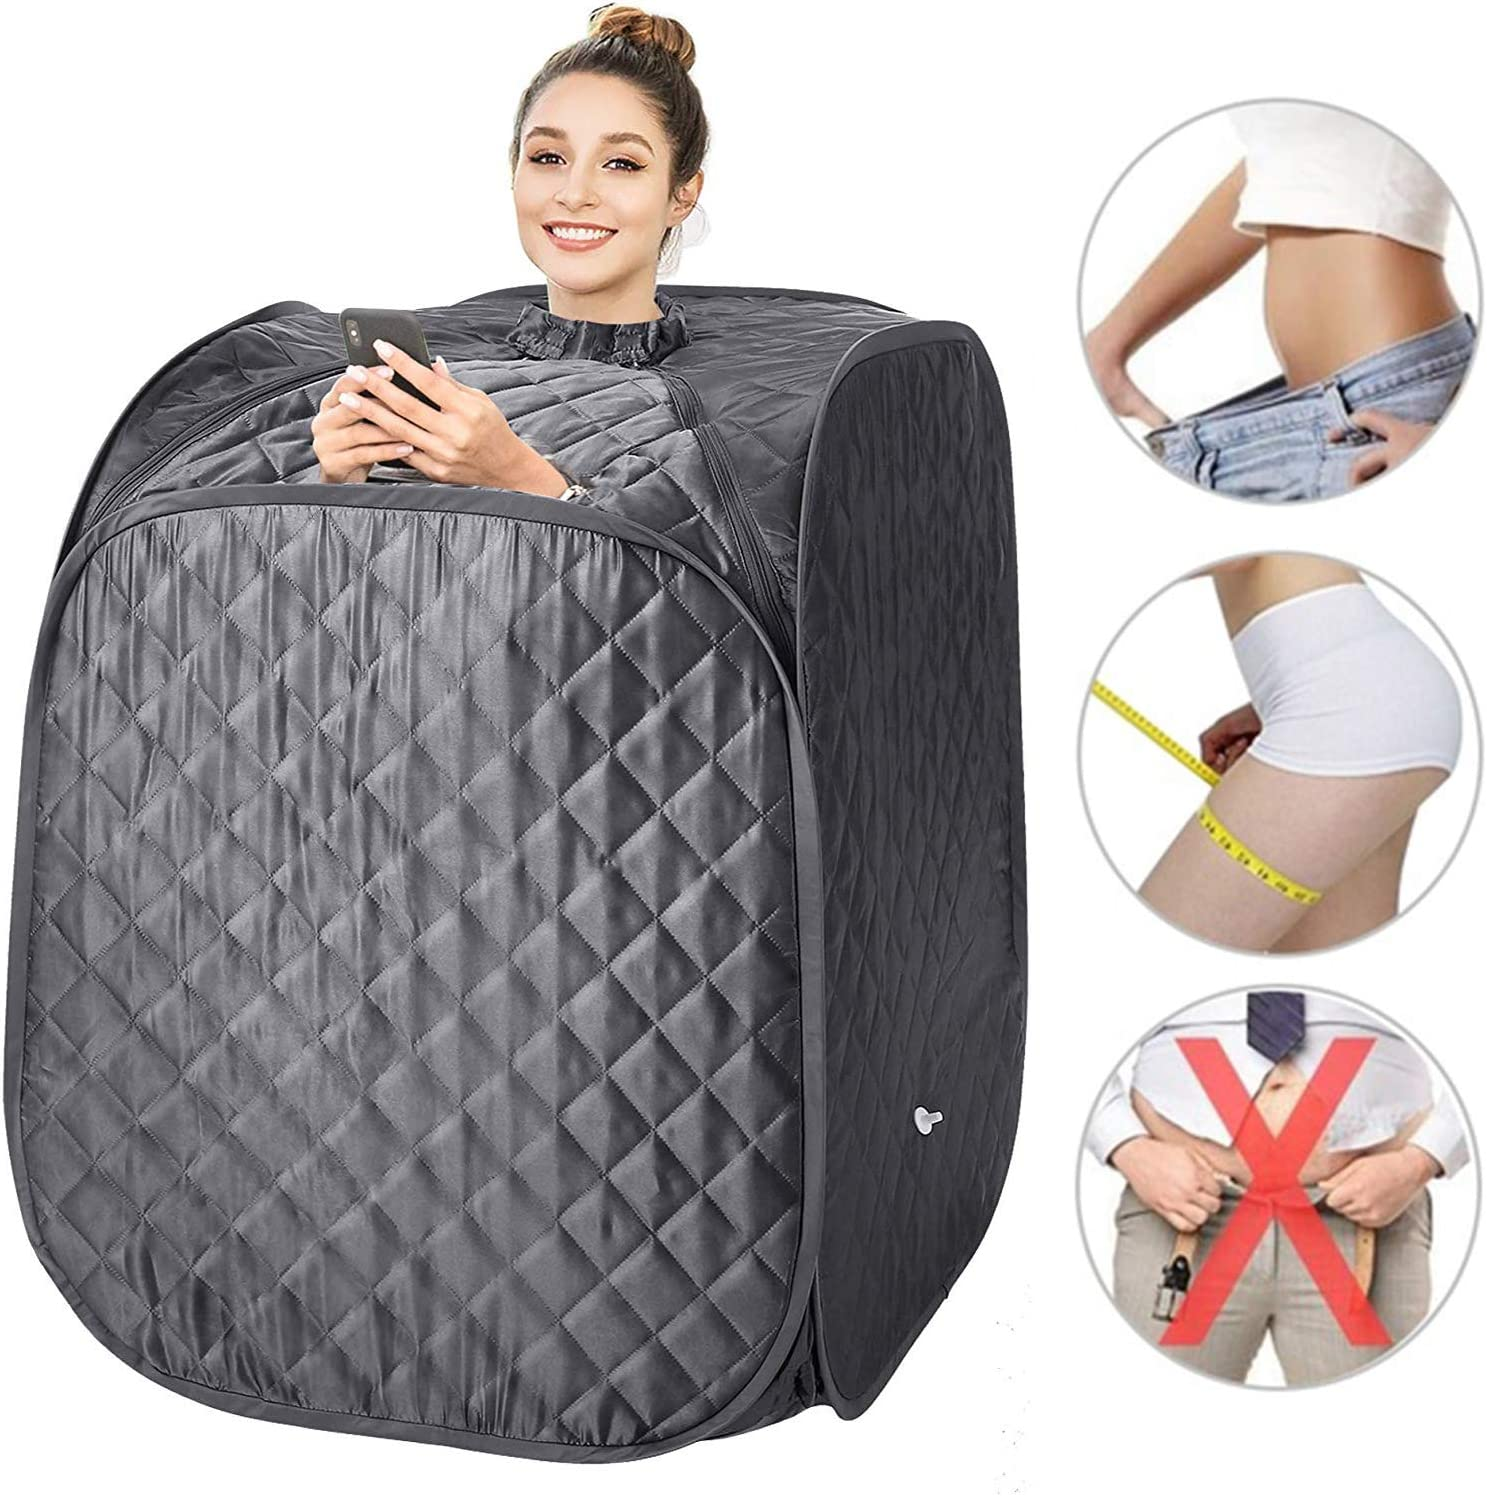 pardise 2L Portable Steam Sauna, Folding Personal Home Sauna Spa Tent Slim Weight Loss Detox Therapy, One Person Sauna with Remote Control,Timer, Foldable Chair US Plug Grey